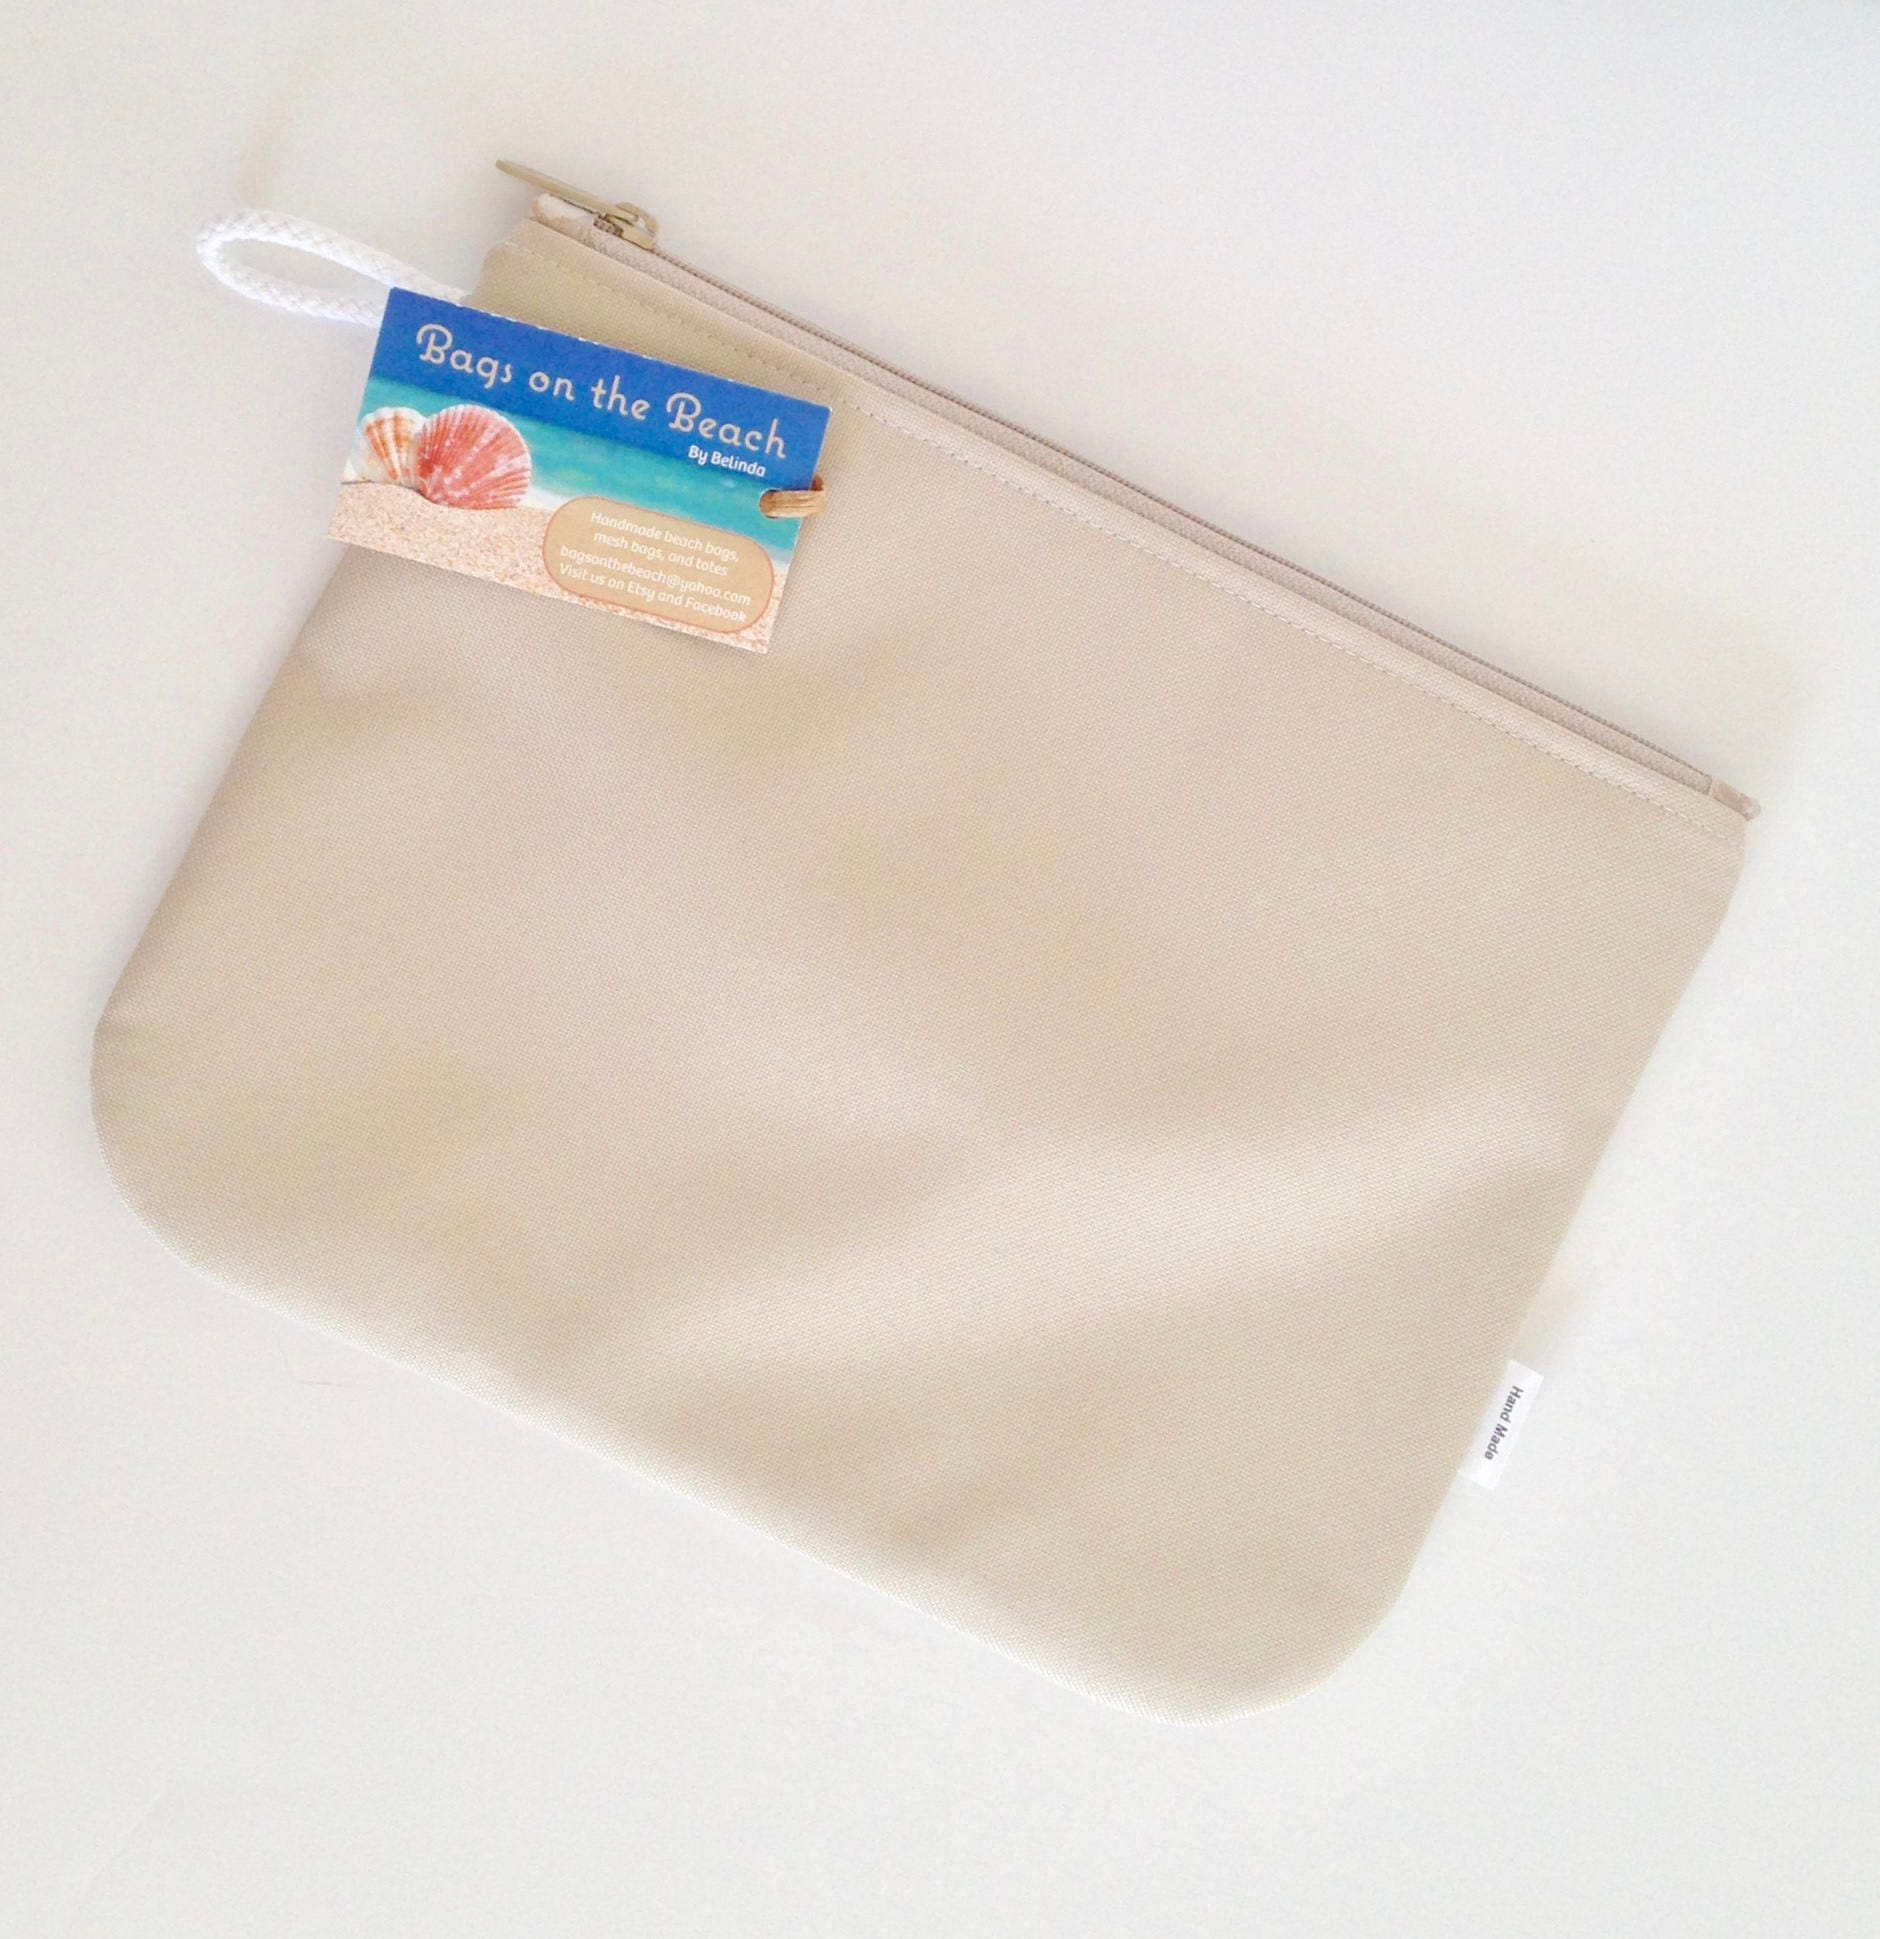 Beach Pouch, Waterproof, Splash Proof, Zippered Pouch, Beige, Pool Pouch,  Wet Bag, Cosmetic Bag, Supplies Bag,